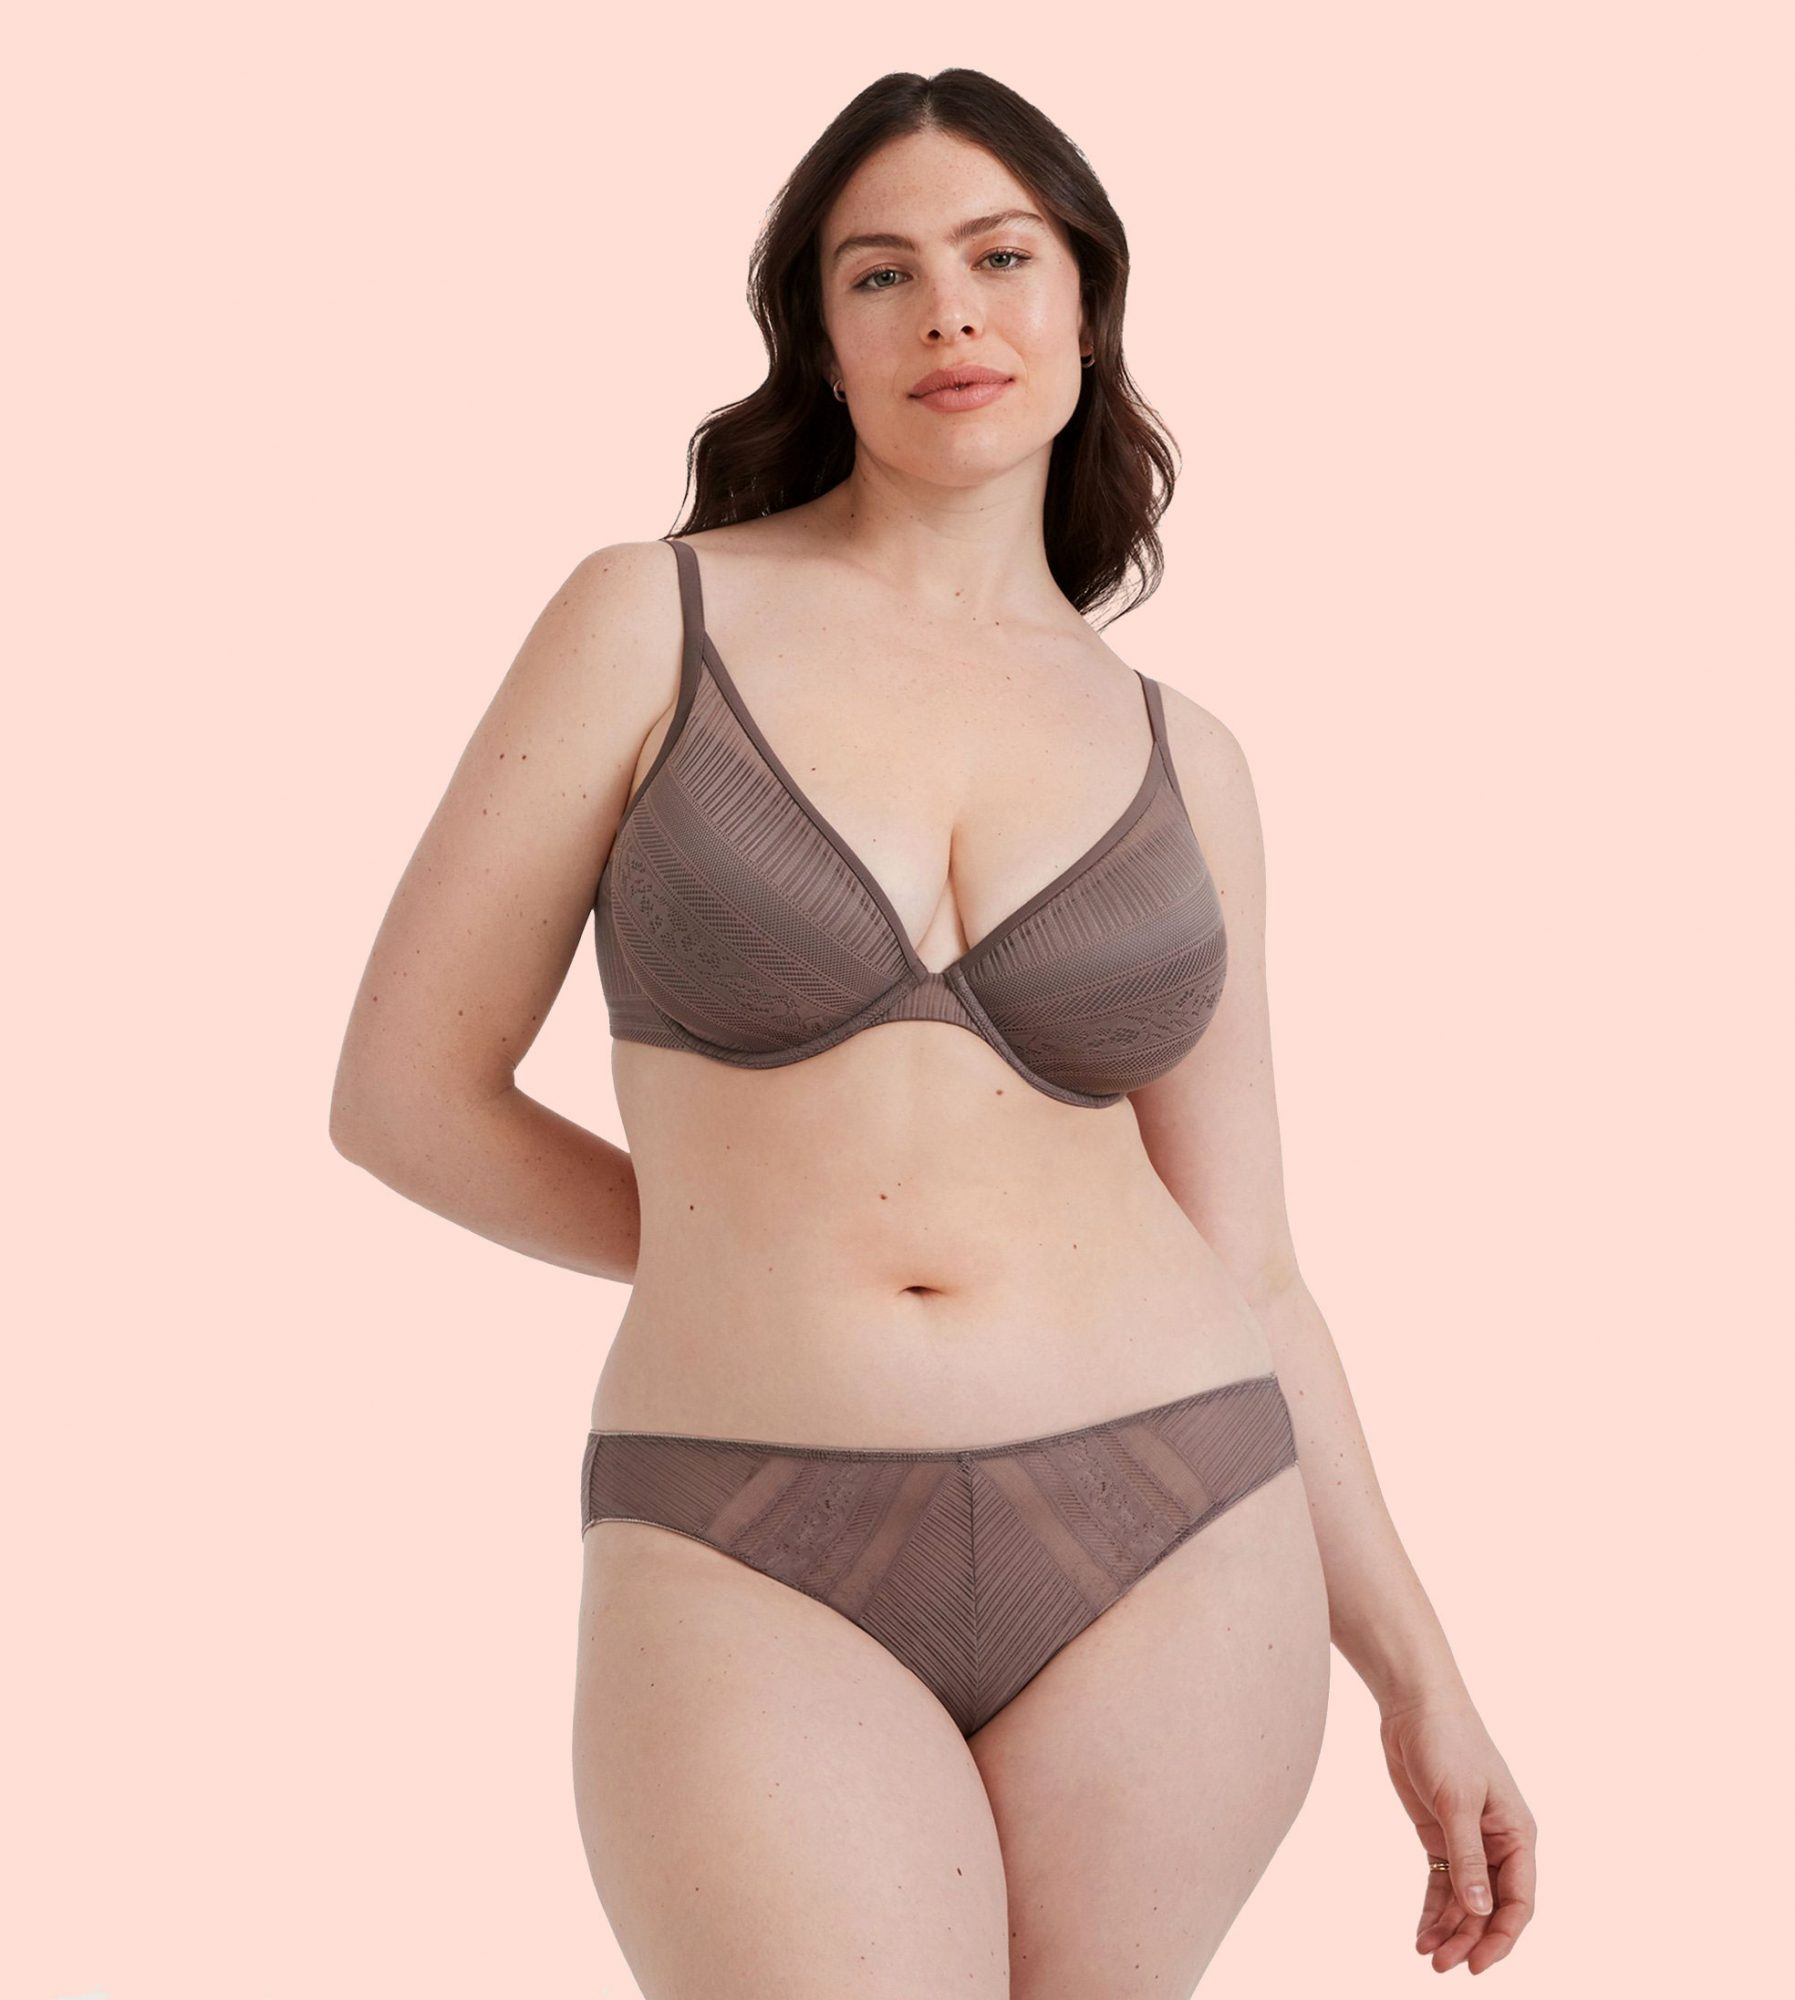 The 15 Best Plus-Size Bras, According to Thousands of Customer Reviews